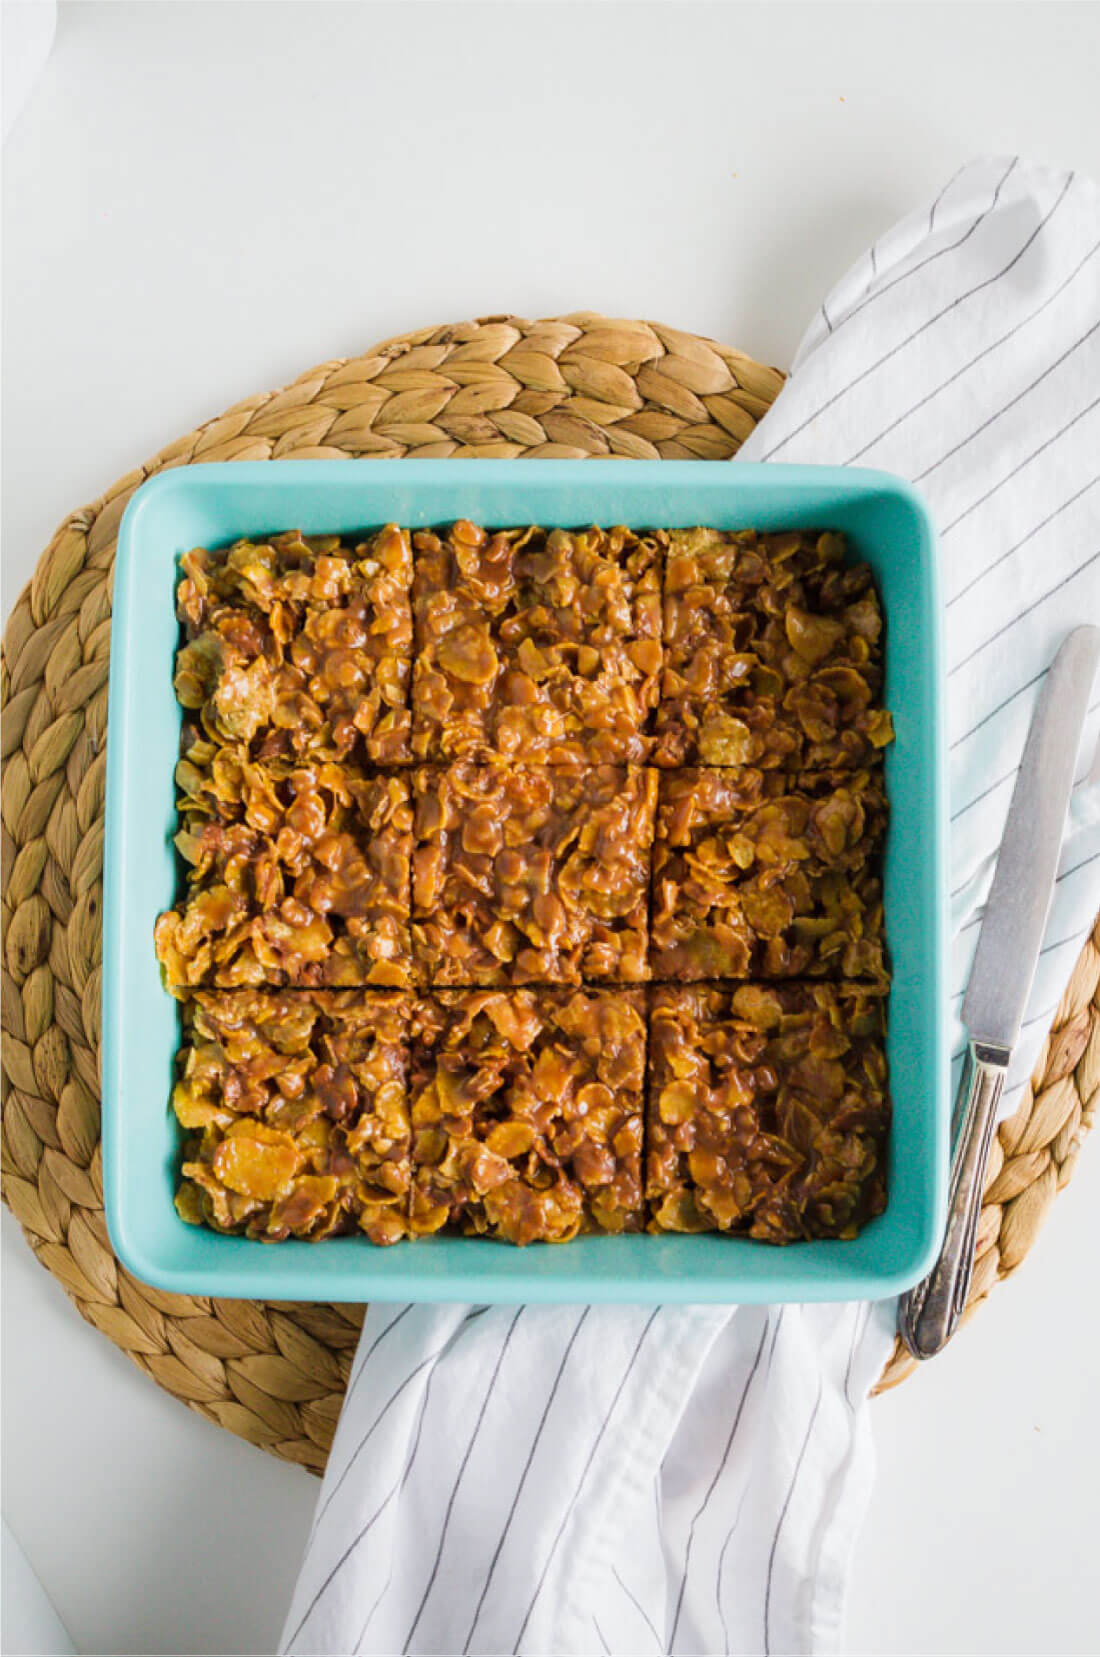 Easy and sweet cereal bars- make for a dessert or for an after school snack. Your family will love this simple recipe! www.thirtyhandmadedays.com